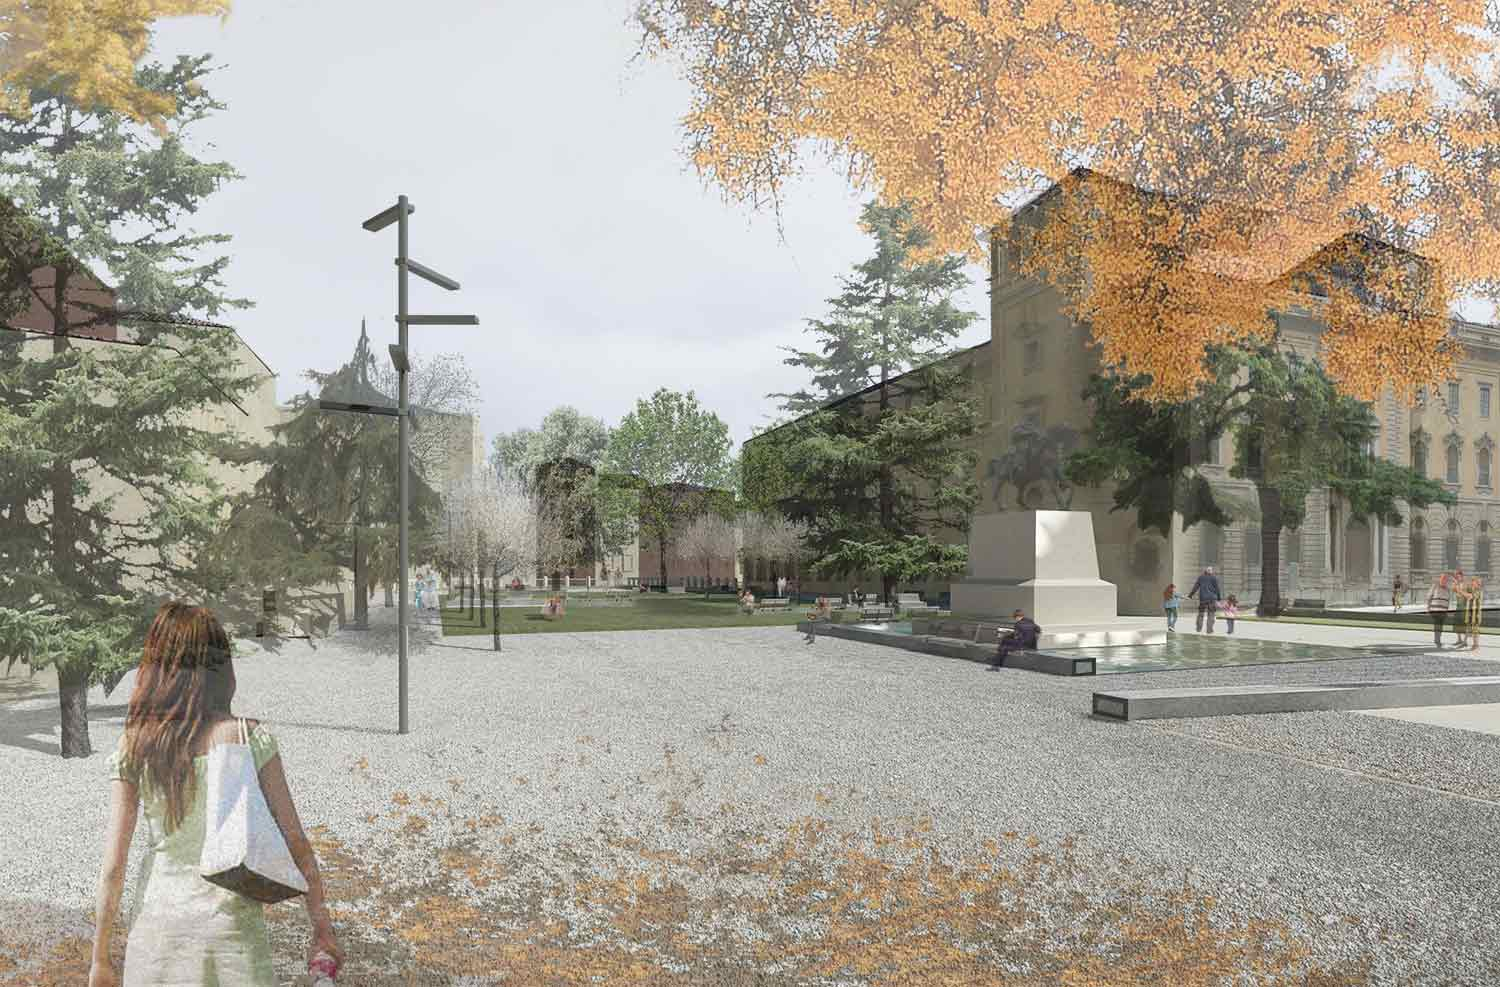 Piazza_Indipendenza_01